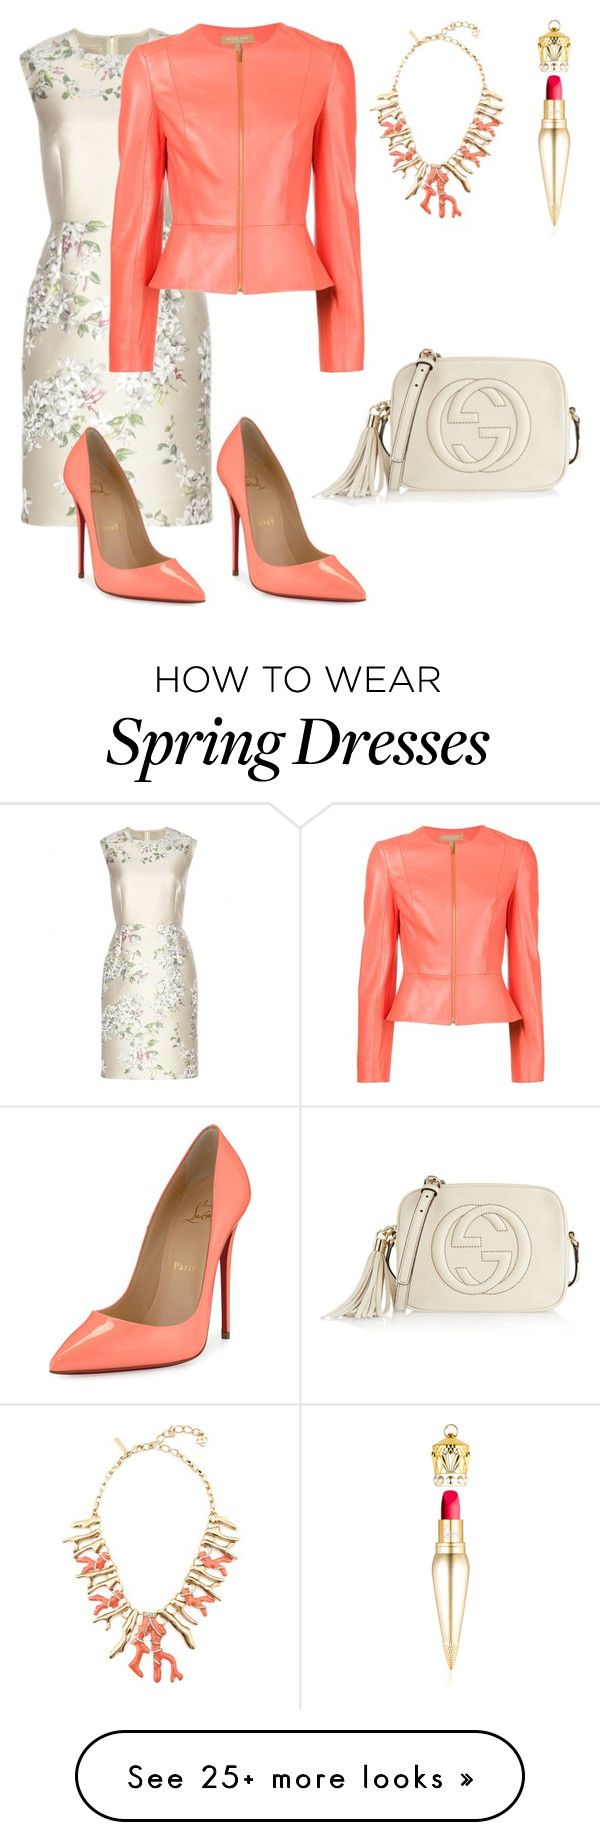 """Spring mood"" by kamiren on Polyvore featuring Giambattista Valli, Christian Louboutin, Michael Kors, Gucci, Oscar de la Renta, women's clothing, women, female, woman and misses"